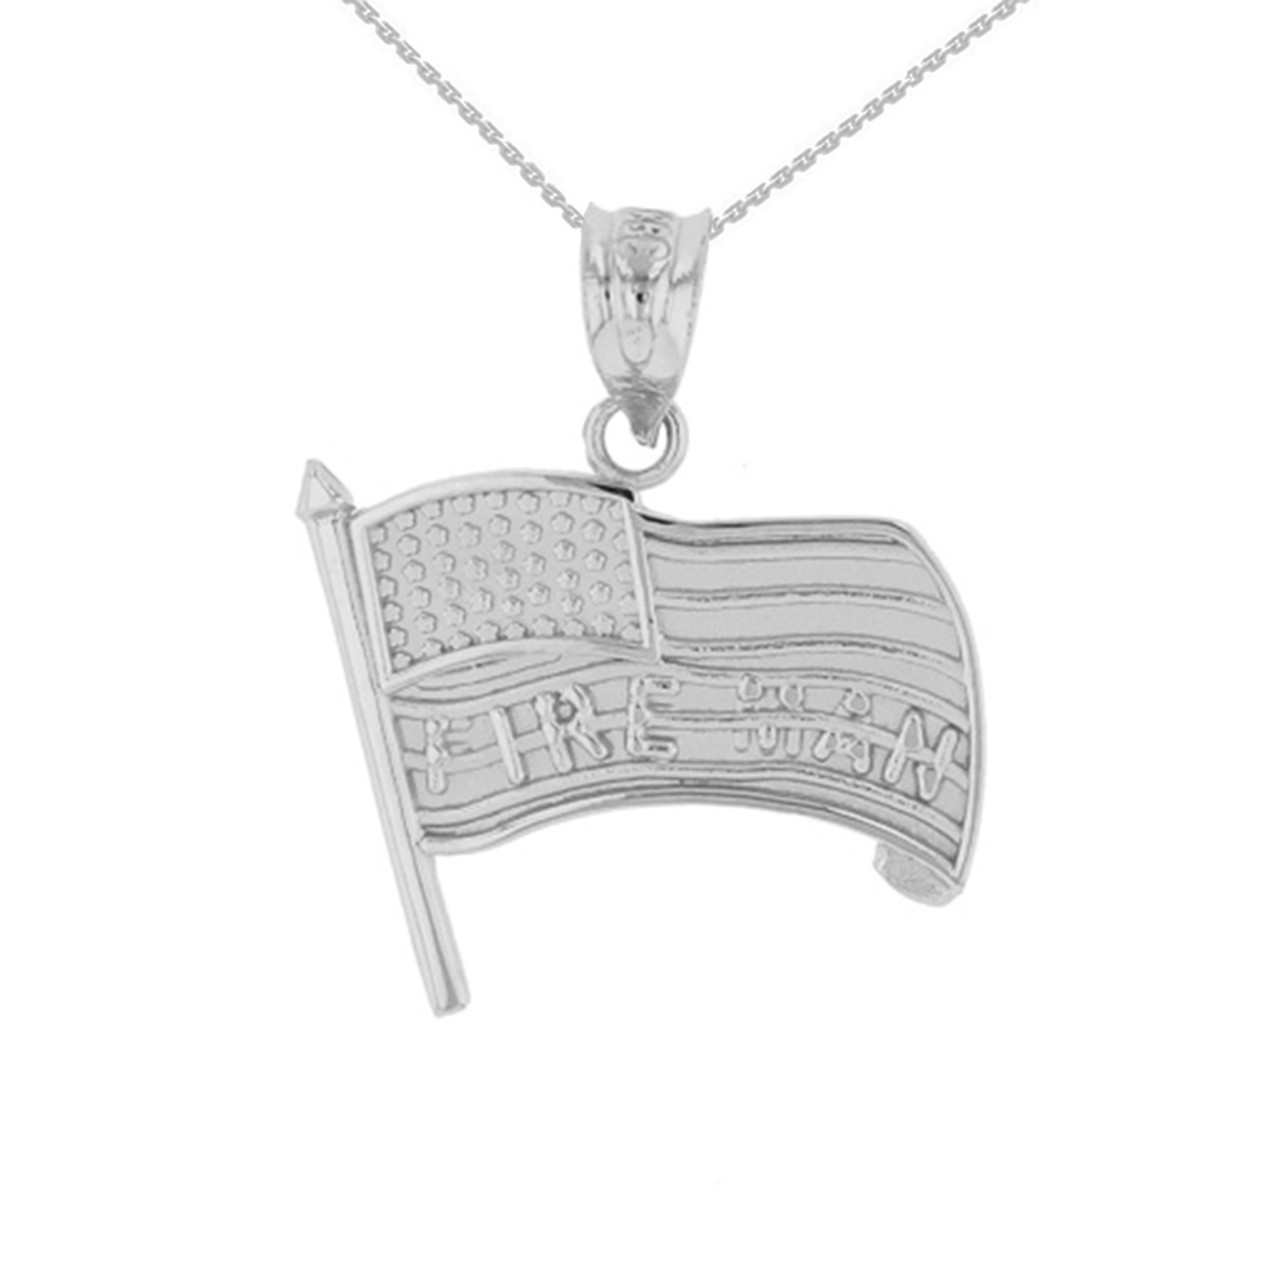 freedom p tall flag exchange jwl stars masonic pendant n tag usa necklace silver the stripes patriot dog american engraved tme